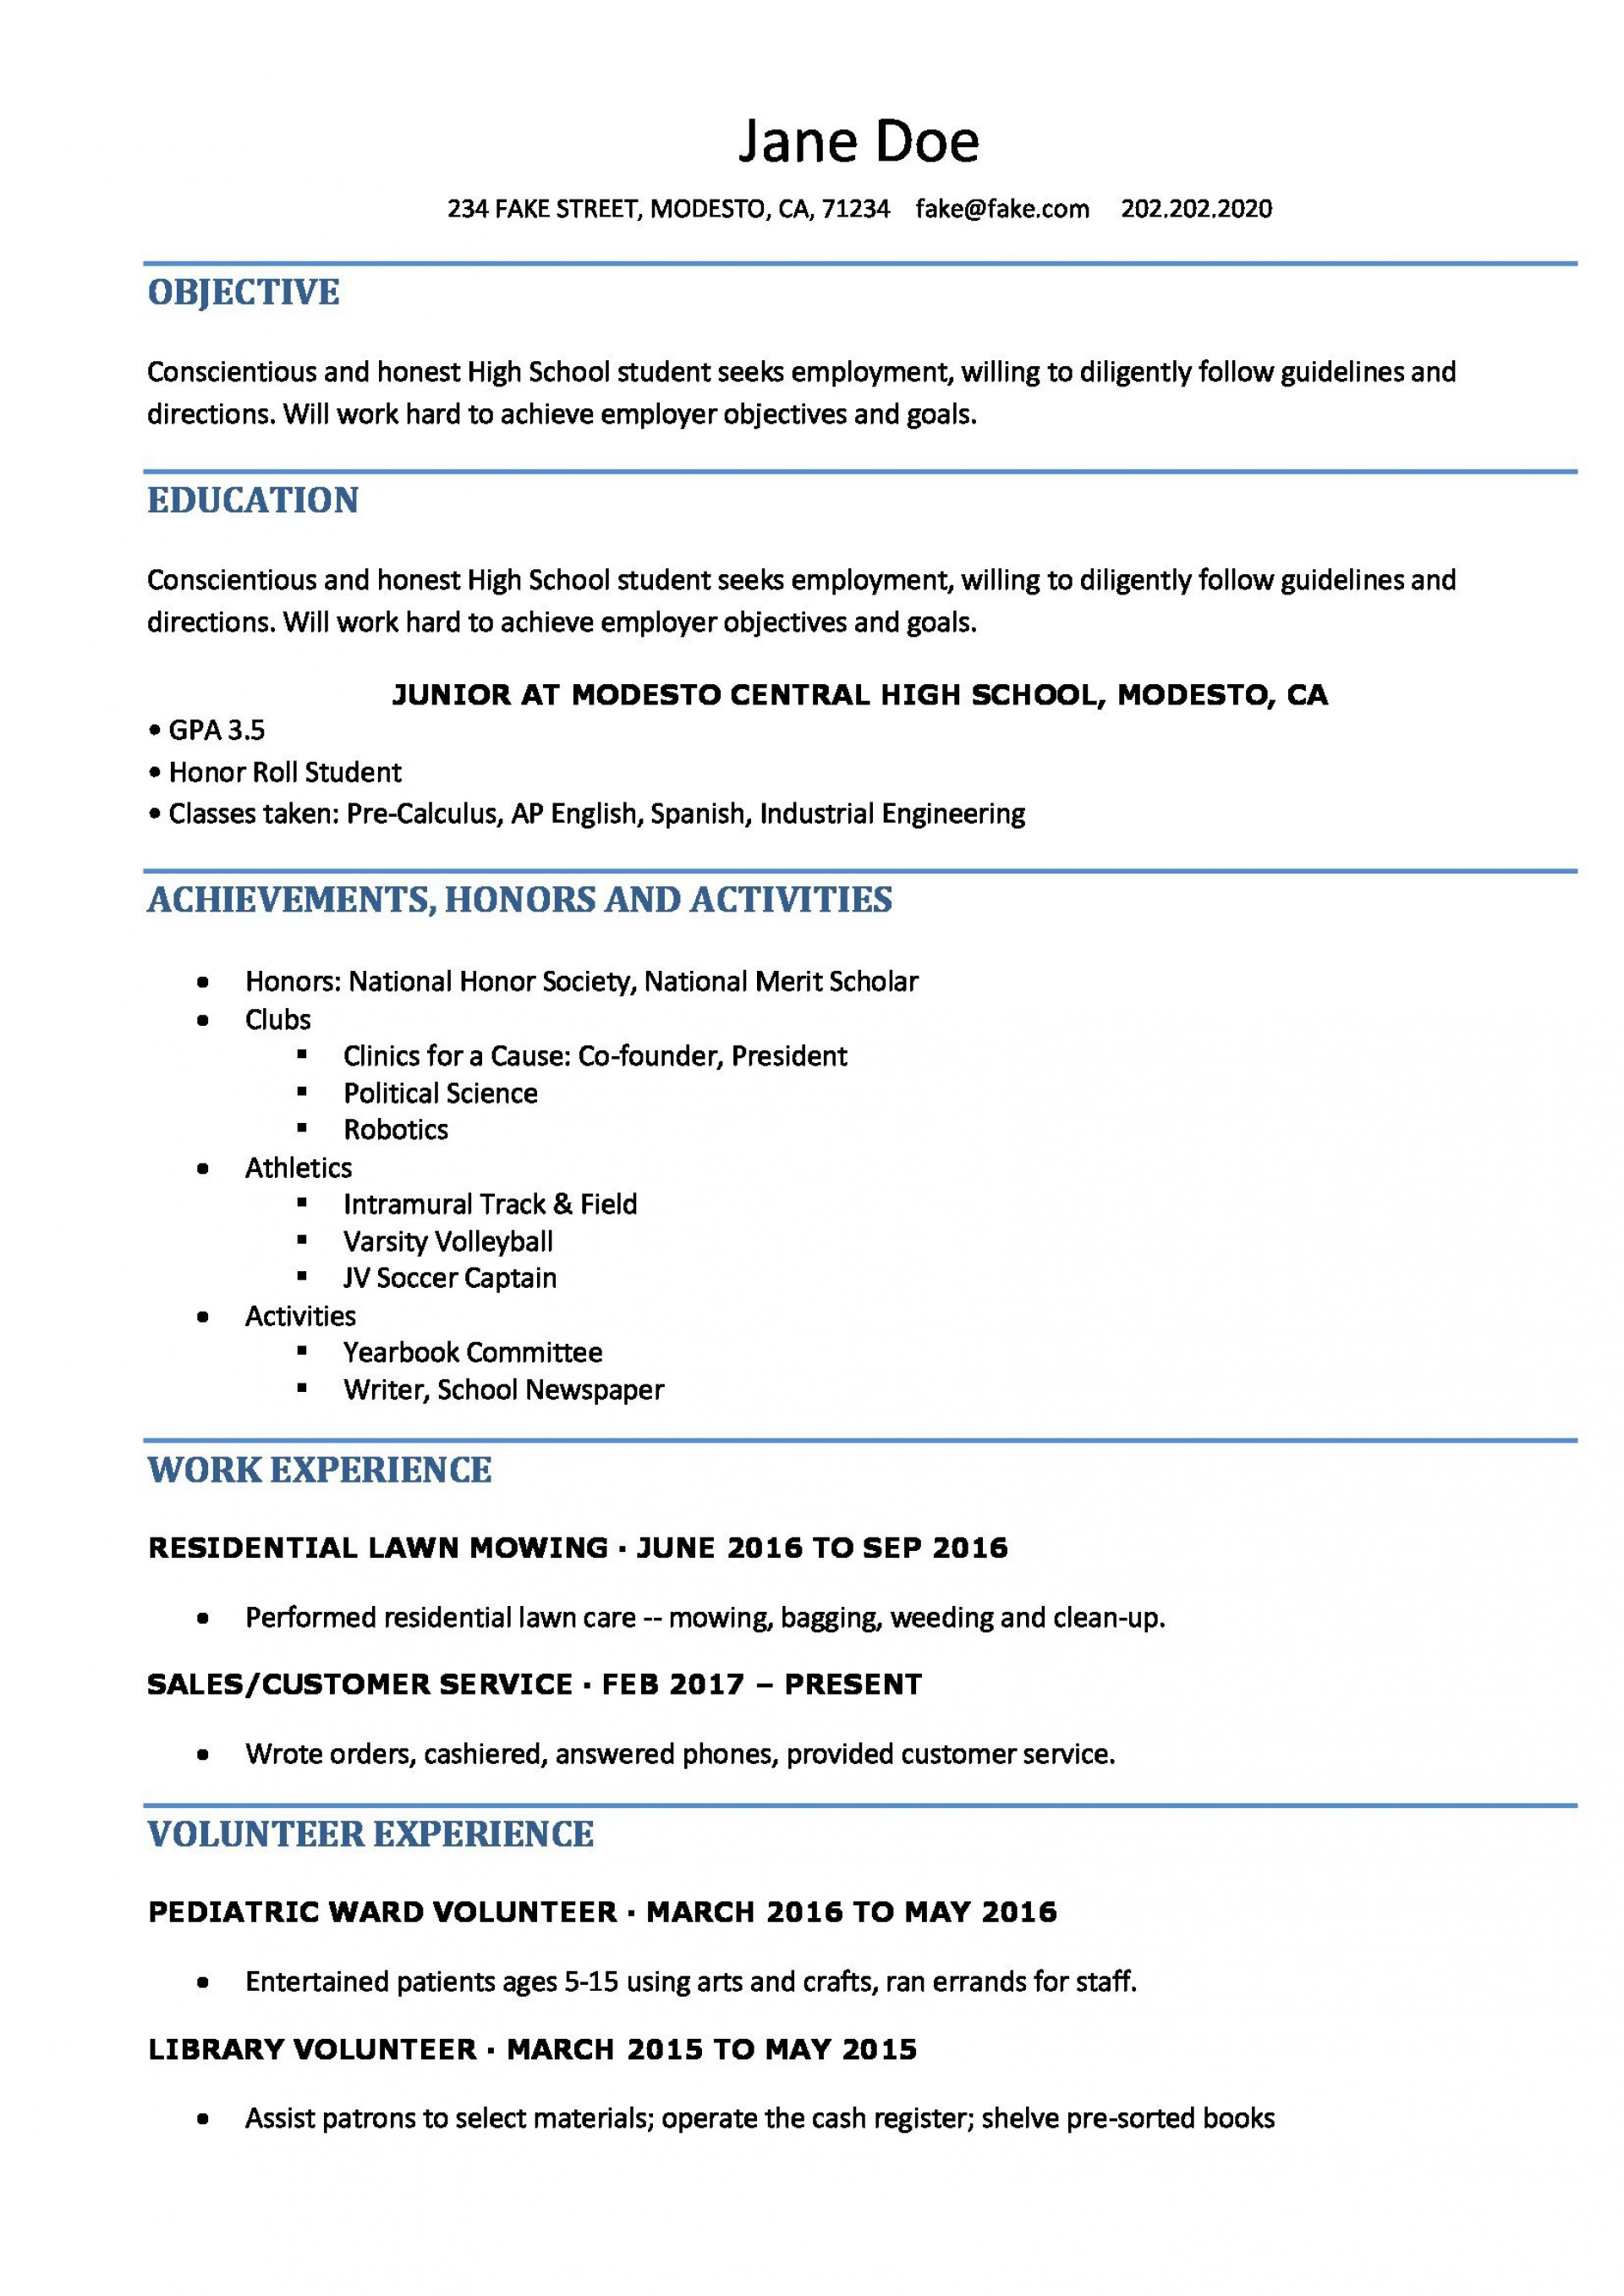 006 Singular Resume Template High School Student Idea  Students Easy For Curriculum Vitae Format Pdf Free Downloadable1920